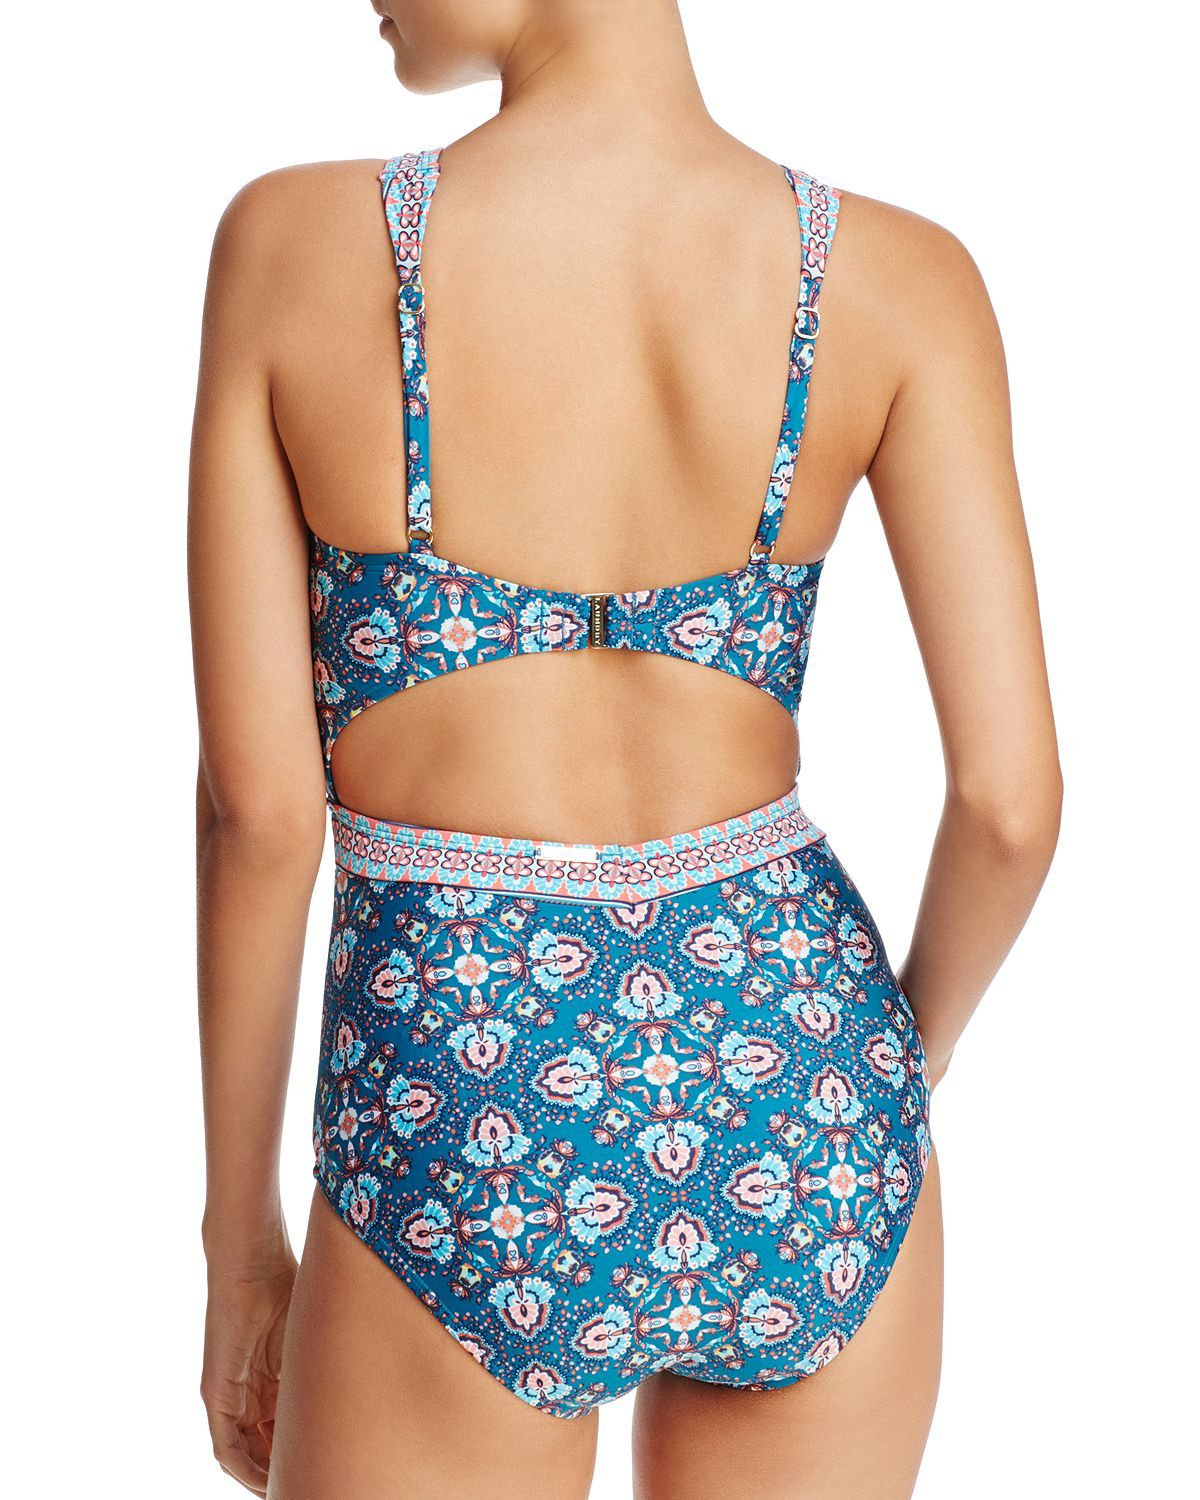 Laundry By Shelli Segal Cutout One Piece Swimsuit One Piece